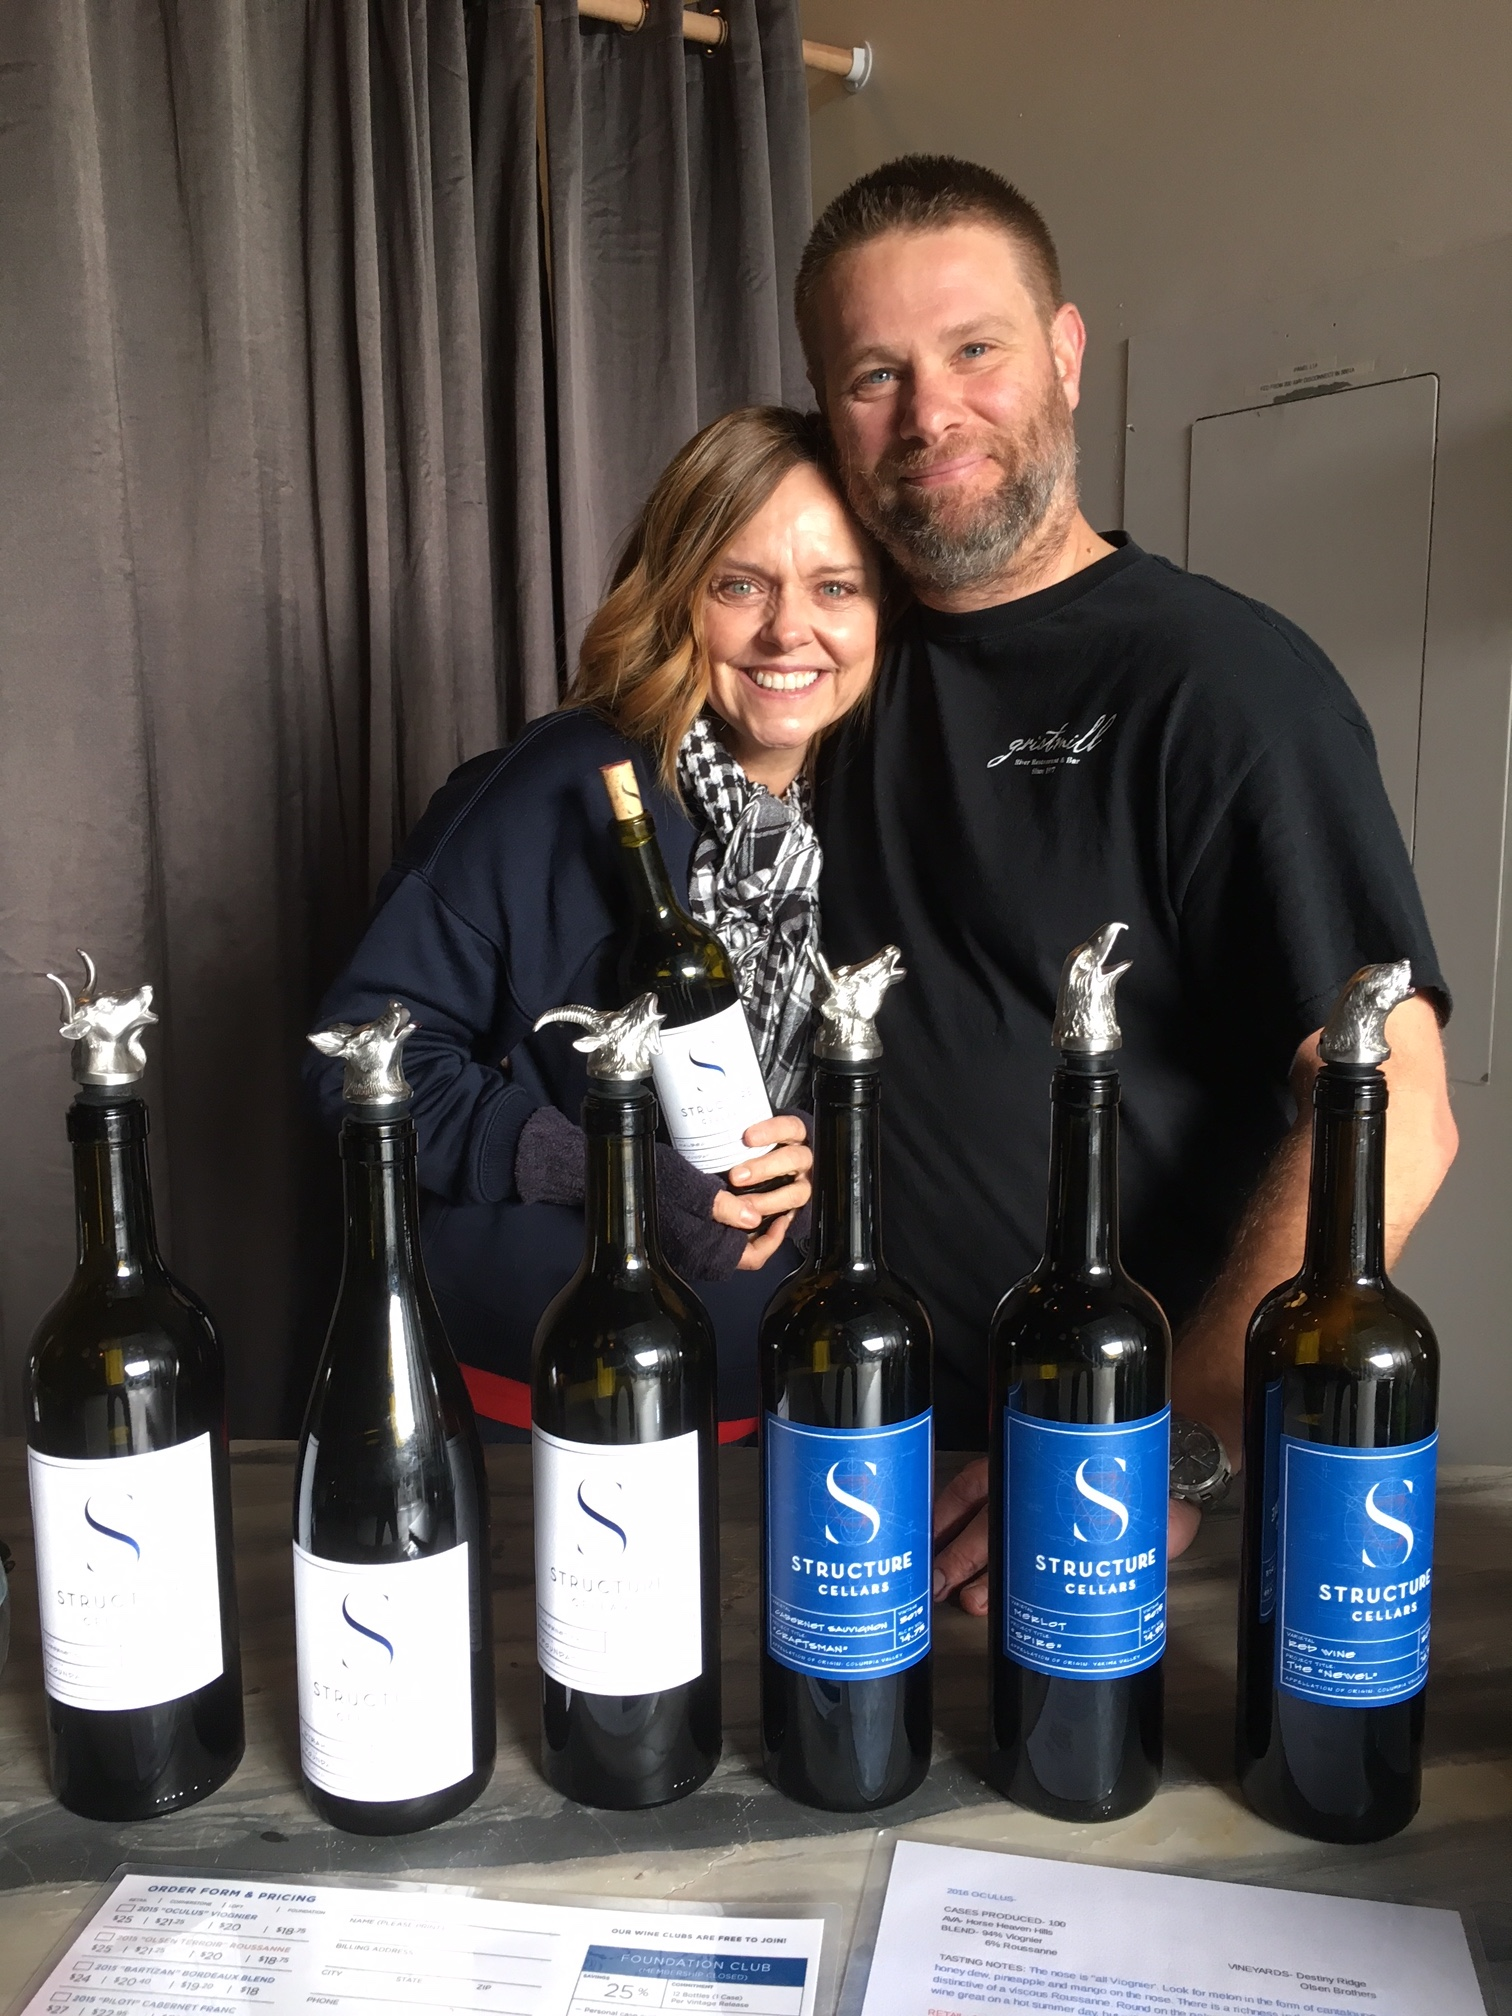 Killer photo here of great folks in the wine industry, Brian and Brandee Grasso of Structure Cellars.